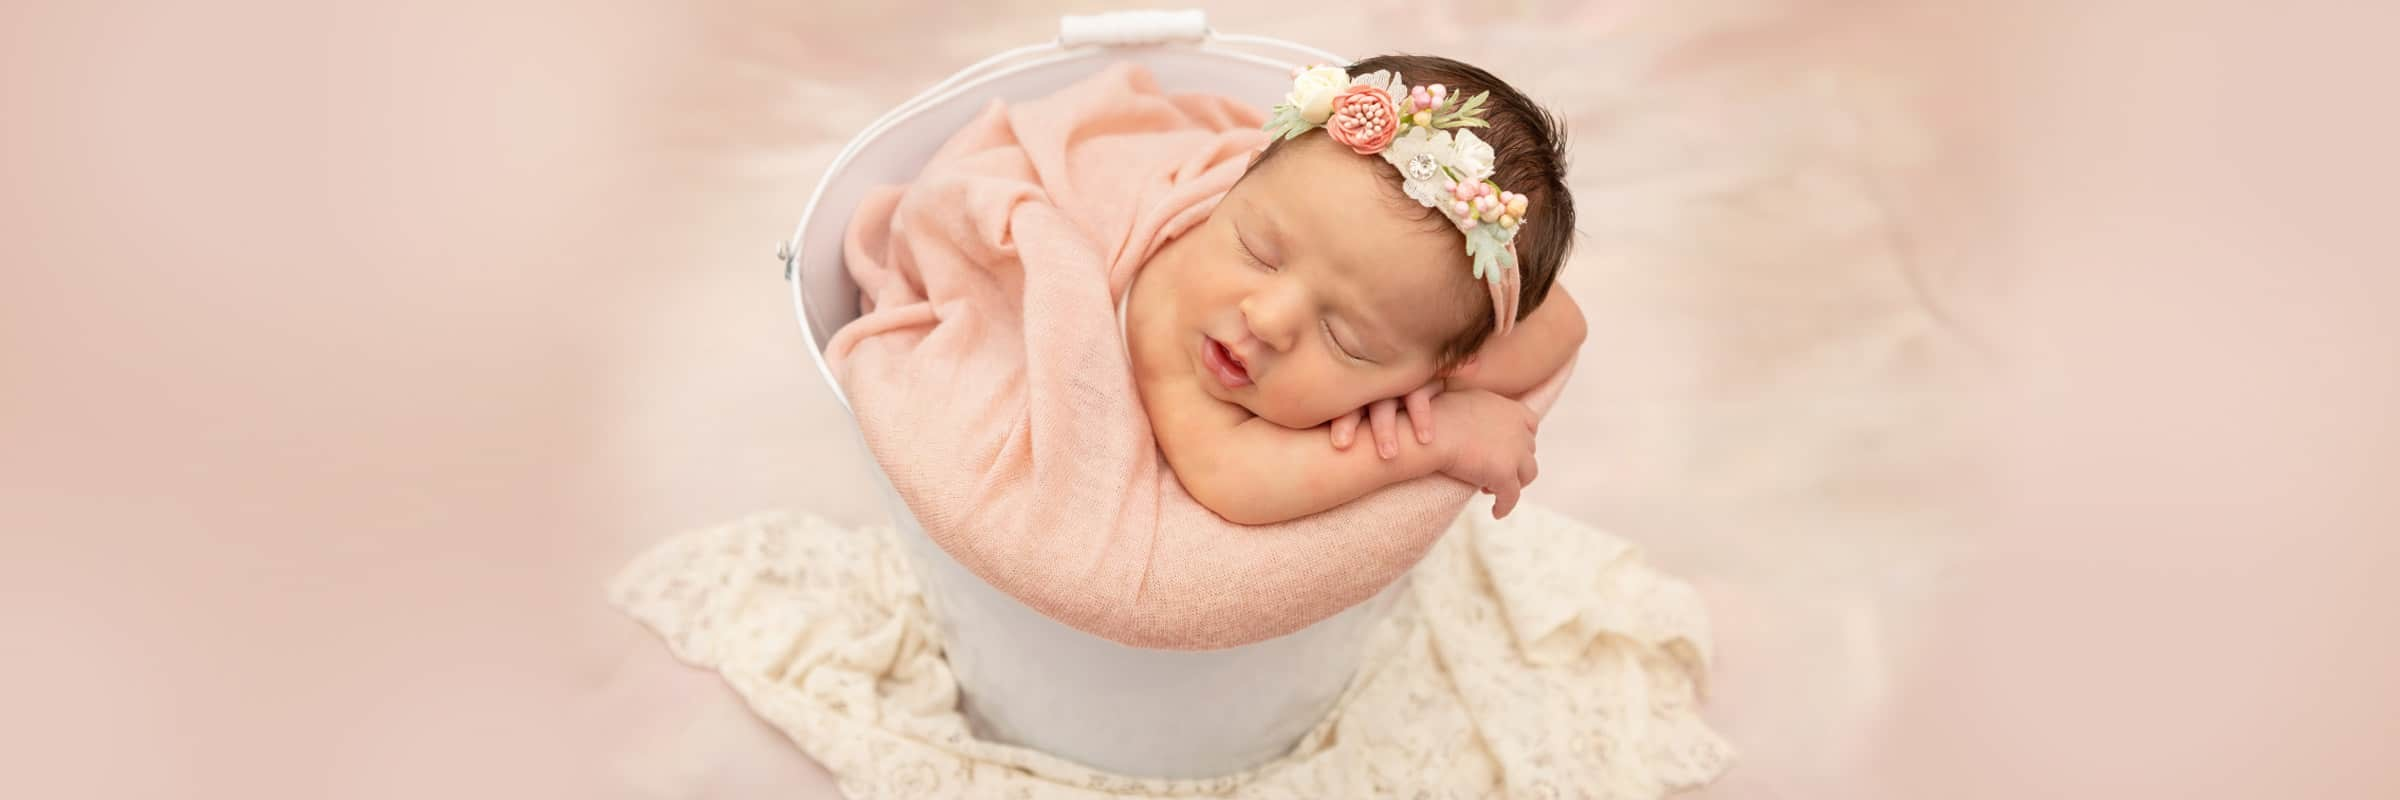 babygirlportrait sleeping in white bucket